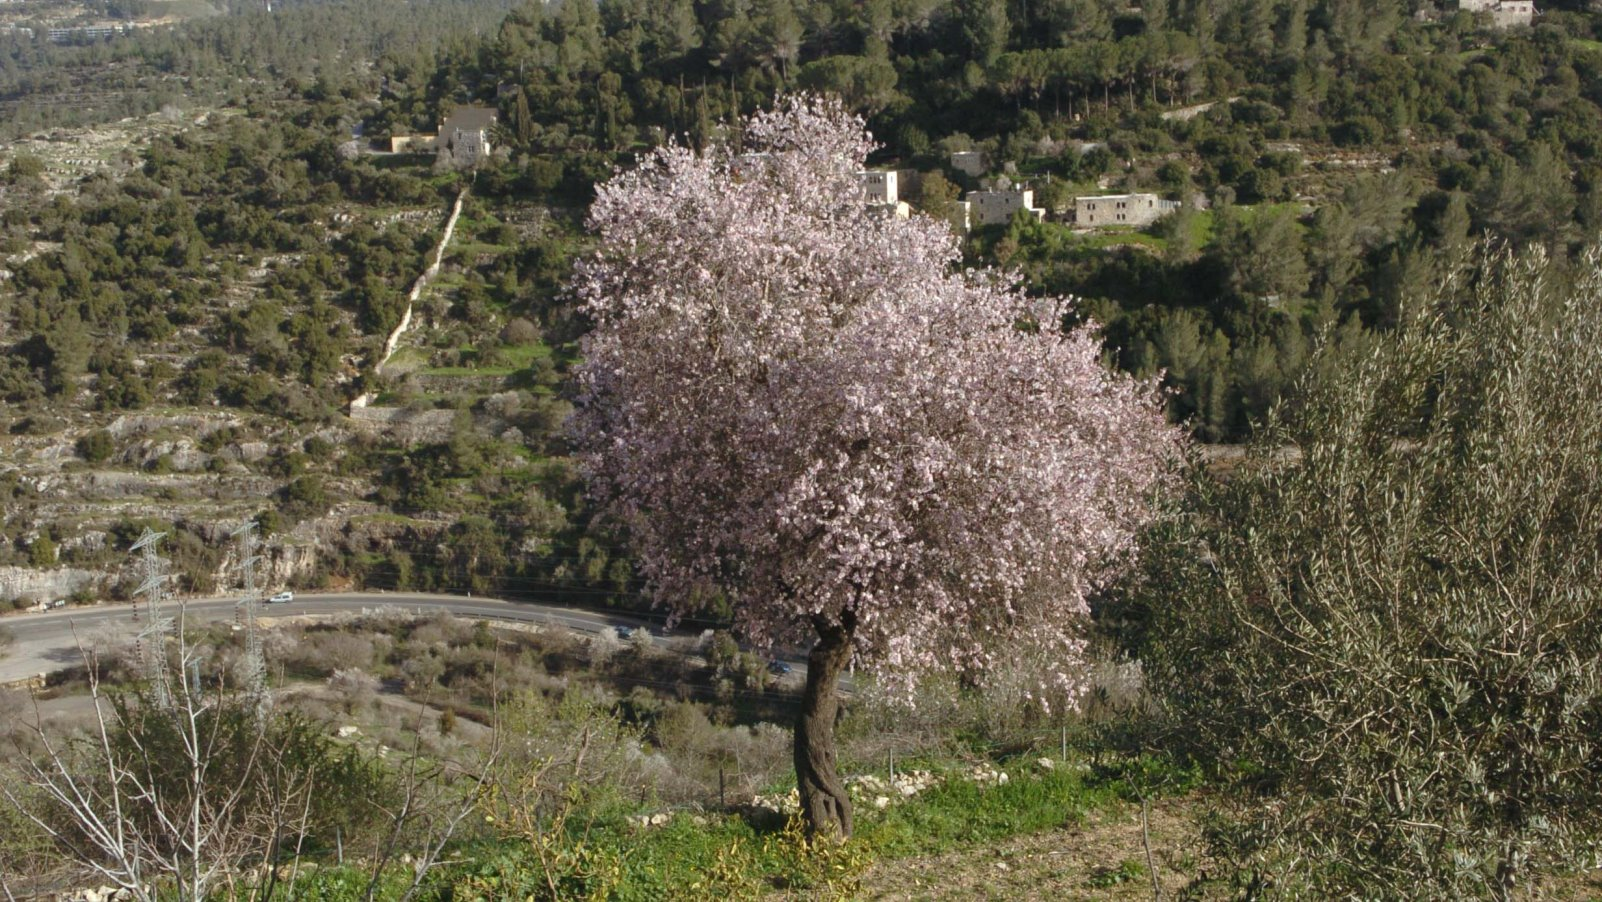 Blooming almond trees in the Elah Valley. Photo by Nati Shohat/FLASH90